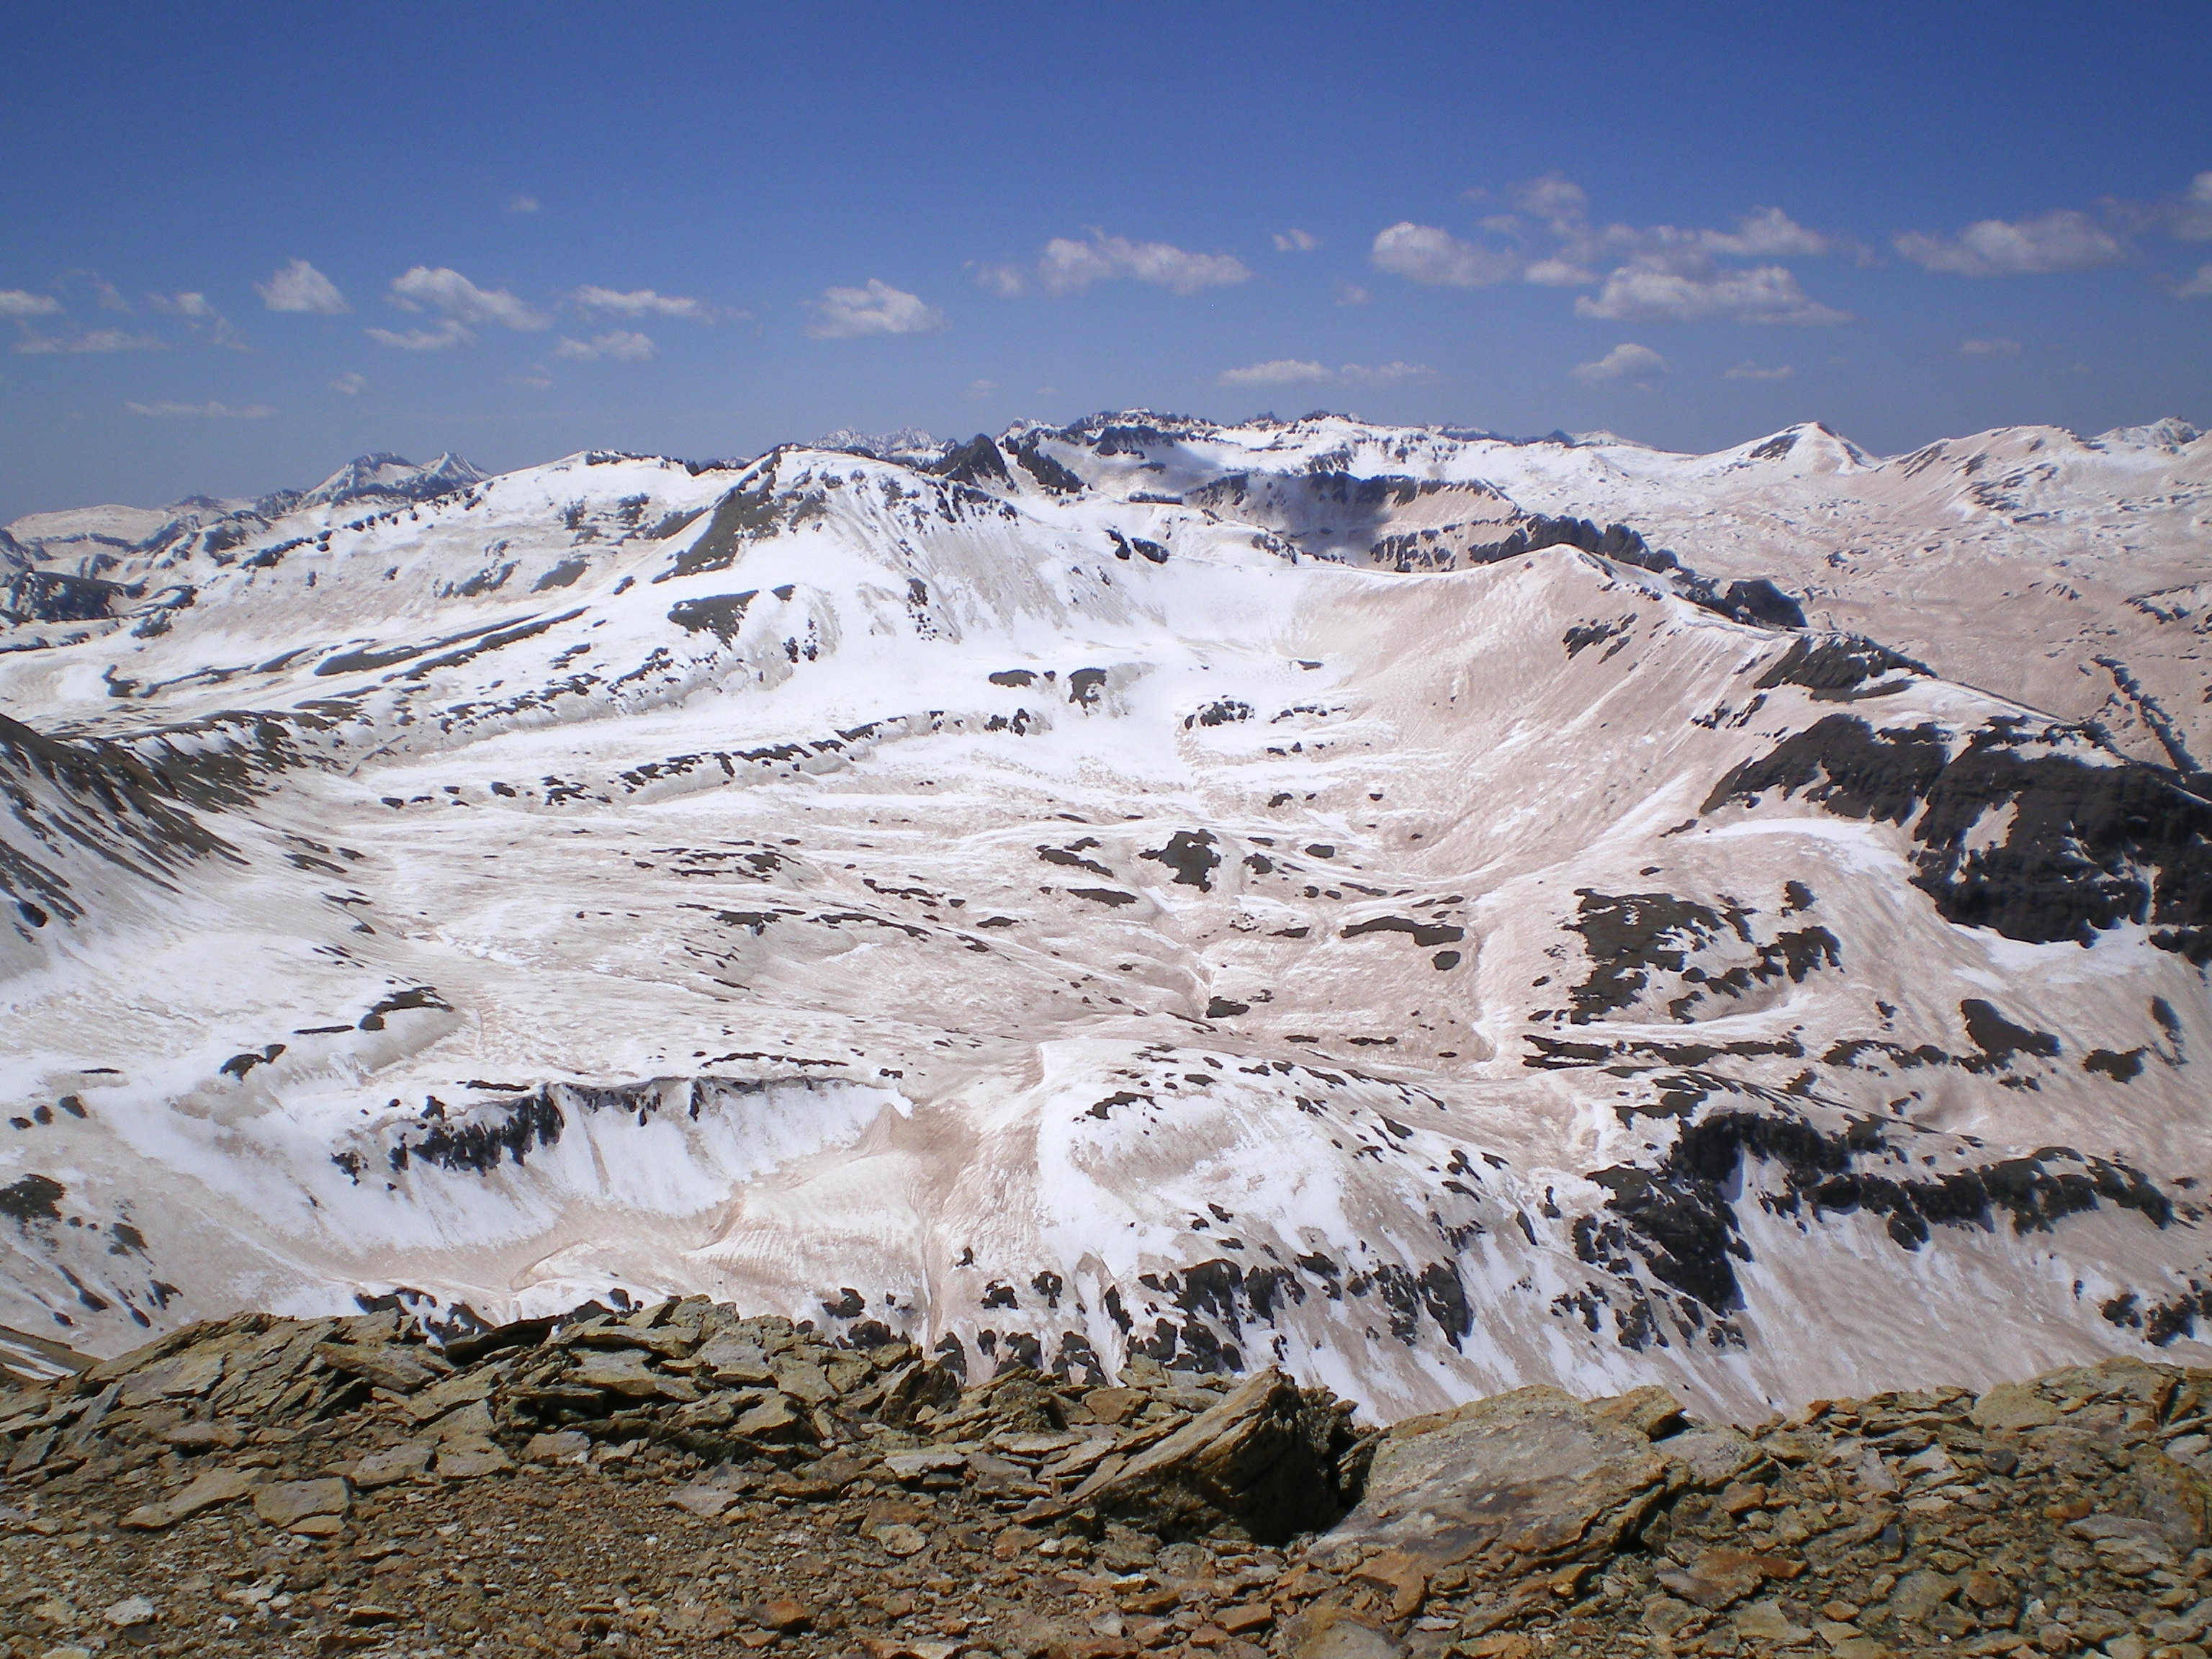 Dust particles on snowpack